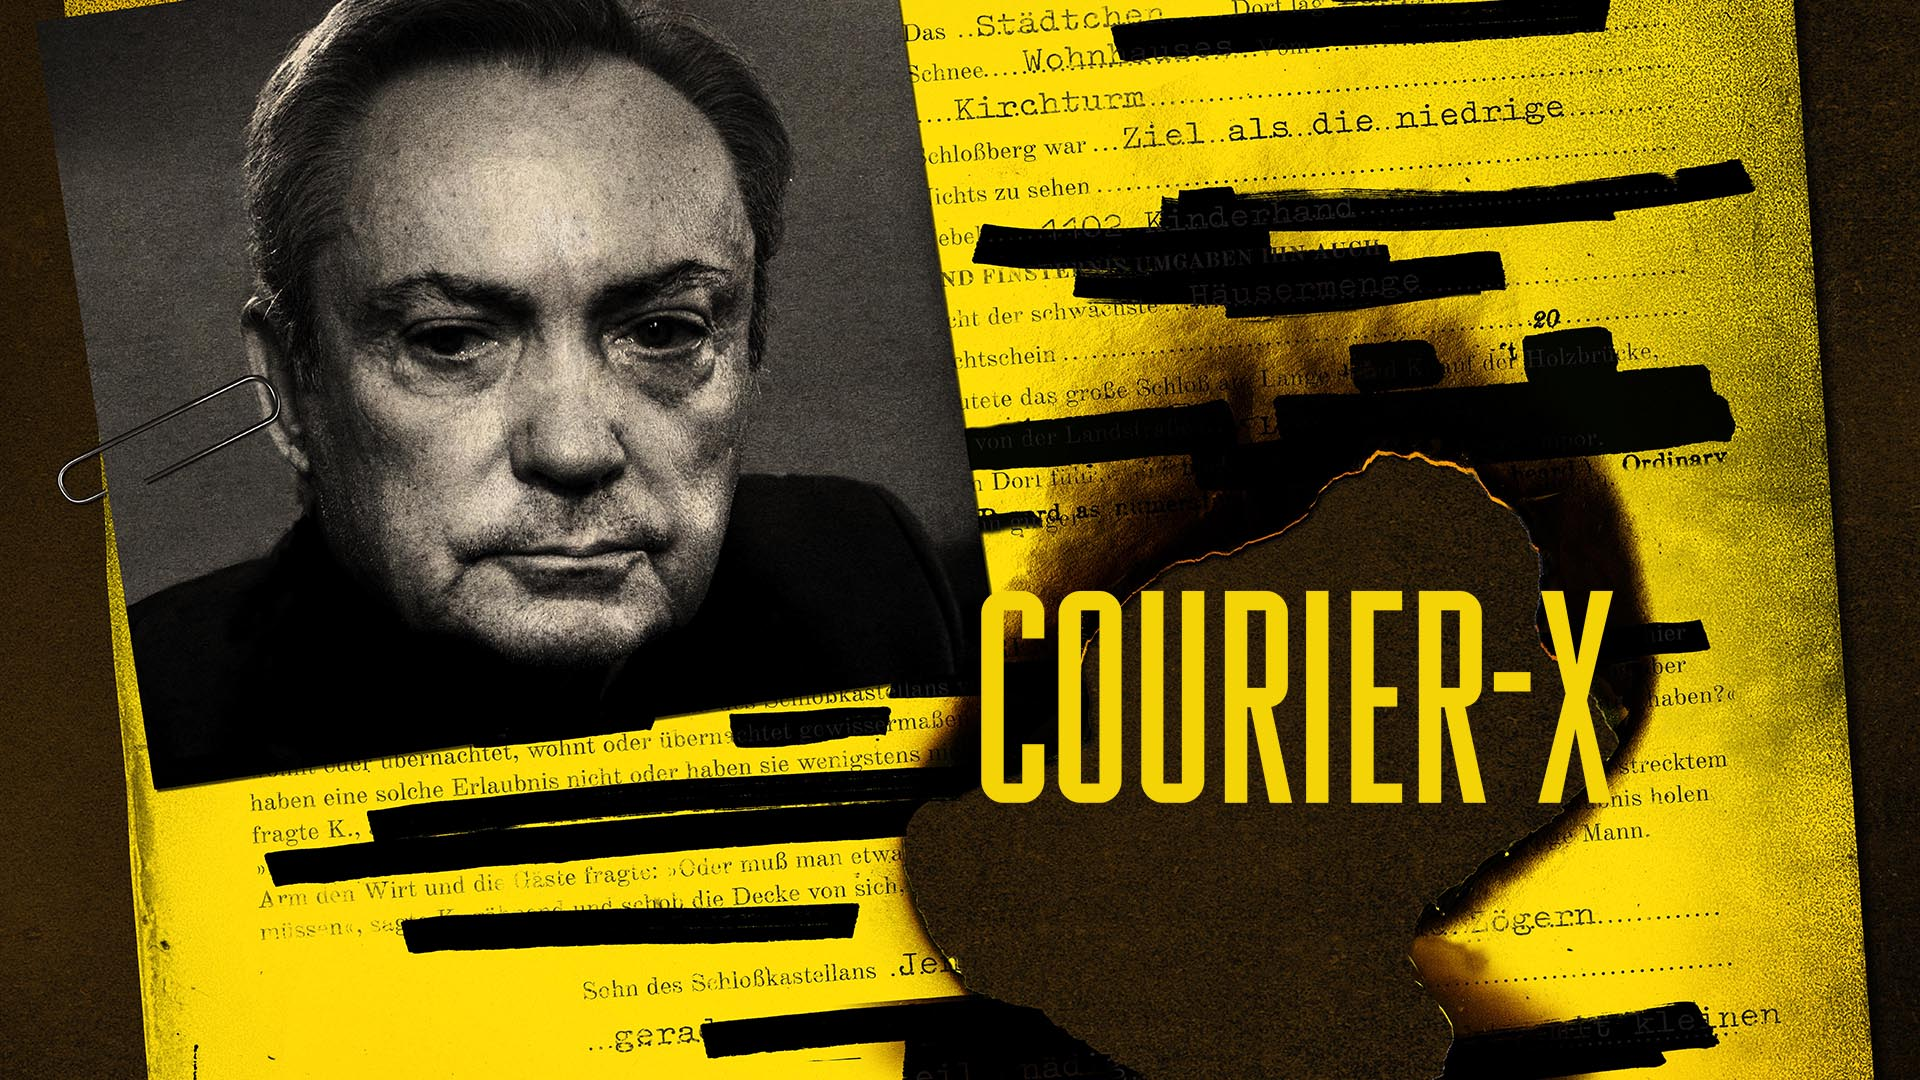 Courier X